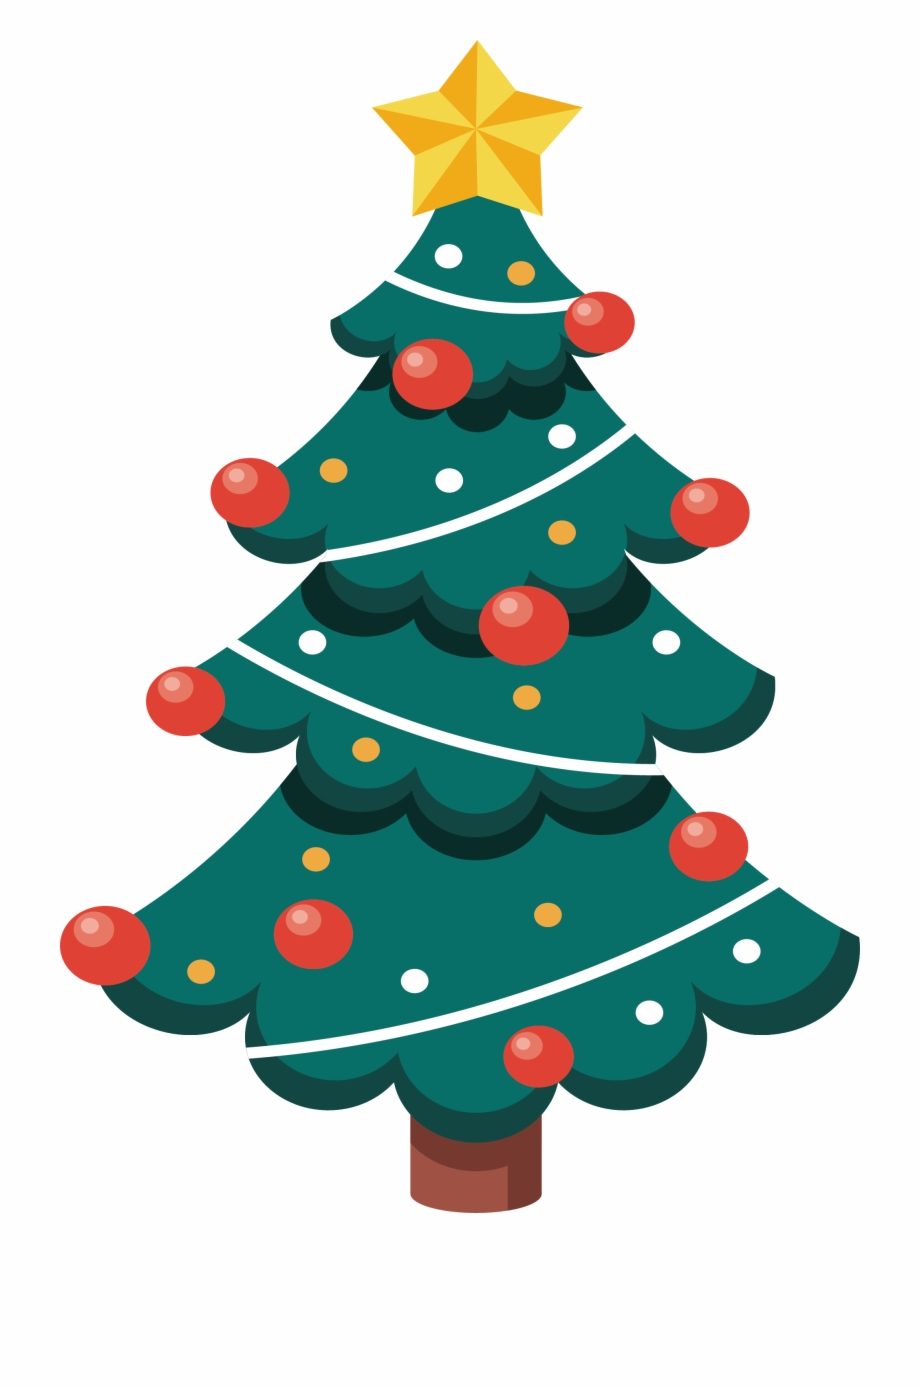 Christmas Tree Vector Png Free Christmas Tree Vector Png Transparent Images 66004 Pngio Displaying 104 free vectors matching christmas tree page 1 of 4. christmas tree vector png transparent